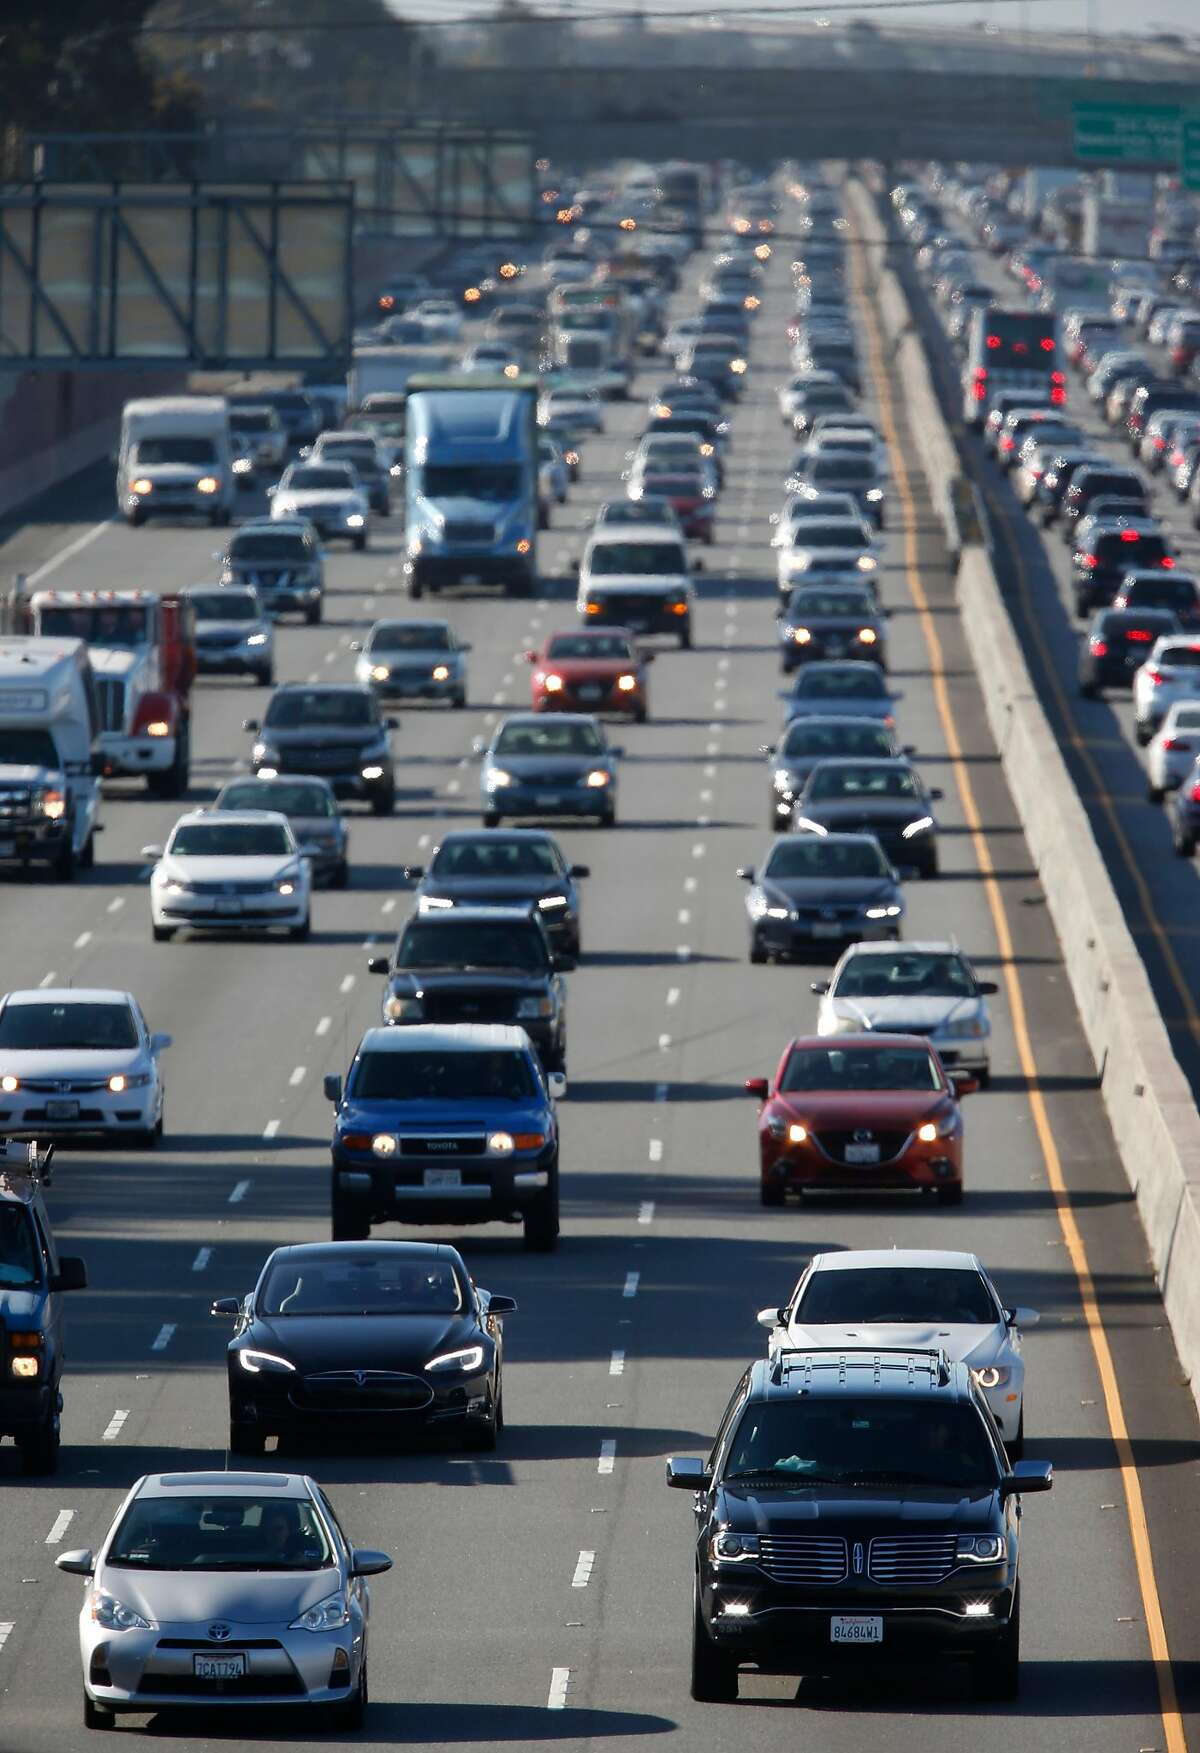 Northbound traffic on Highway 101 near Peninsula Avenue in San Mateo, Calif. Commute times keep increasing in Silicon Valley, limiting regional economic growth and innovation.